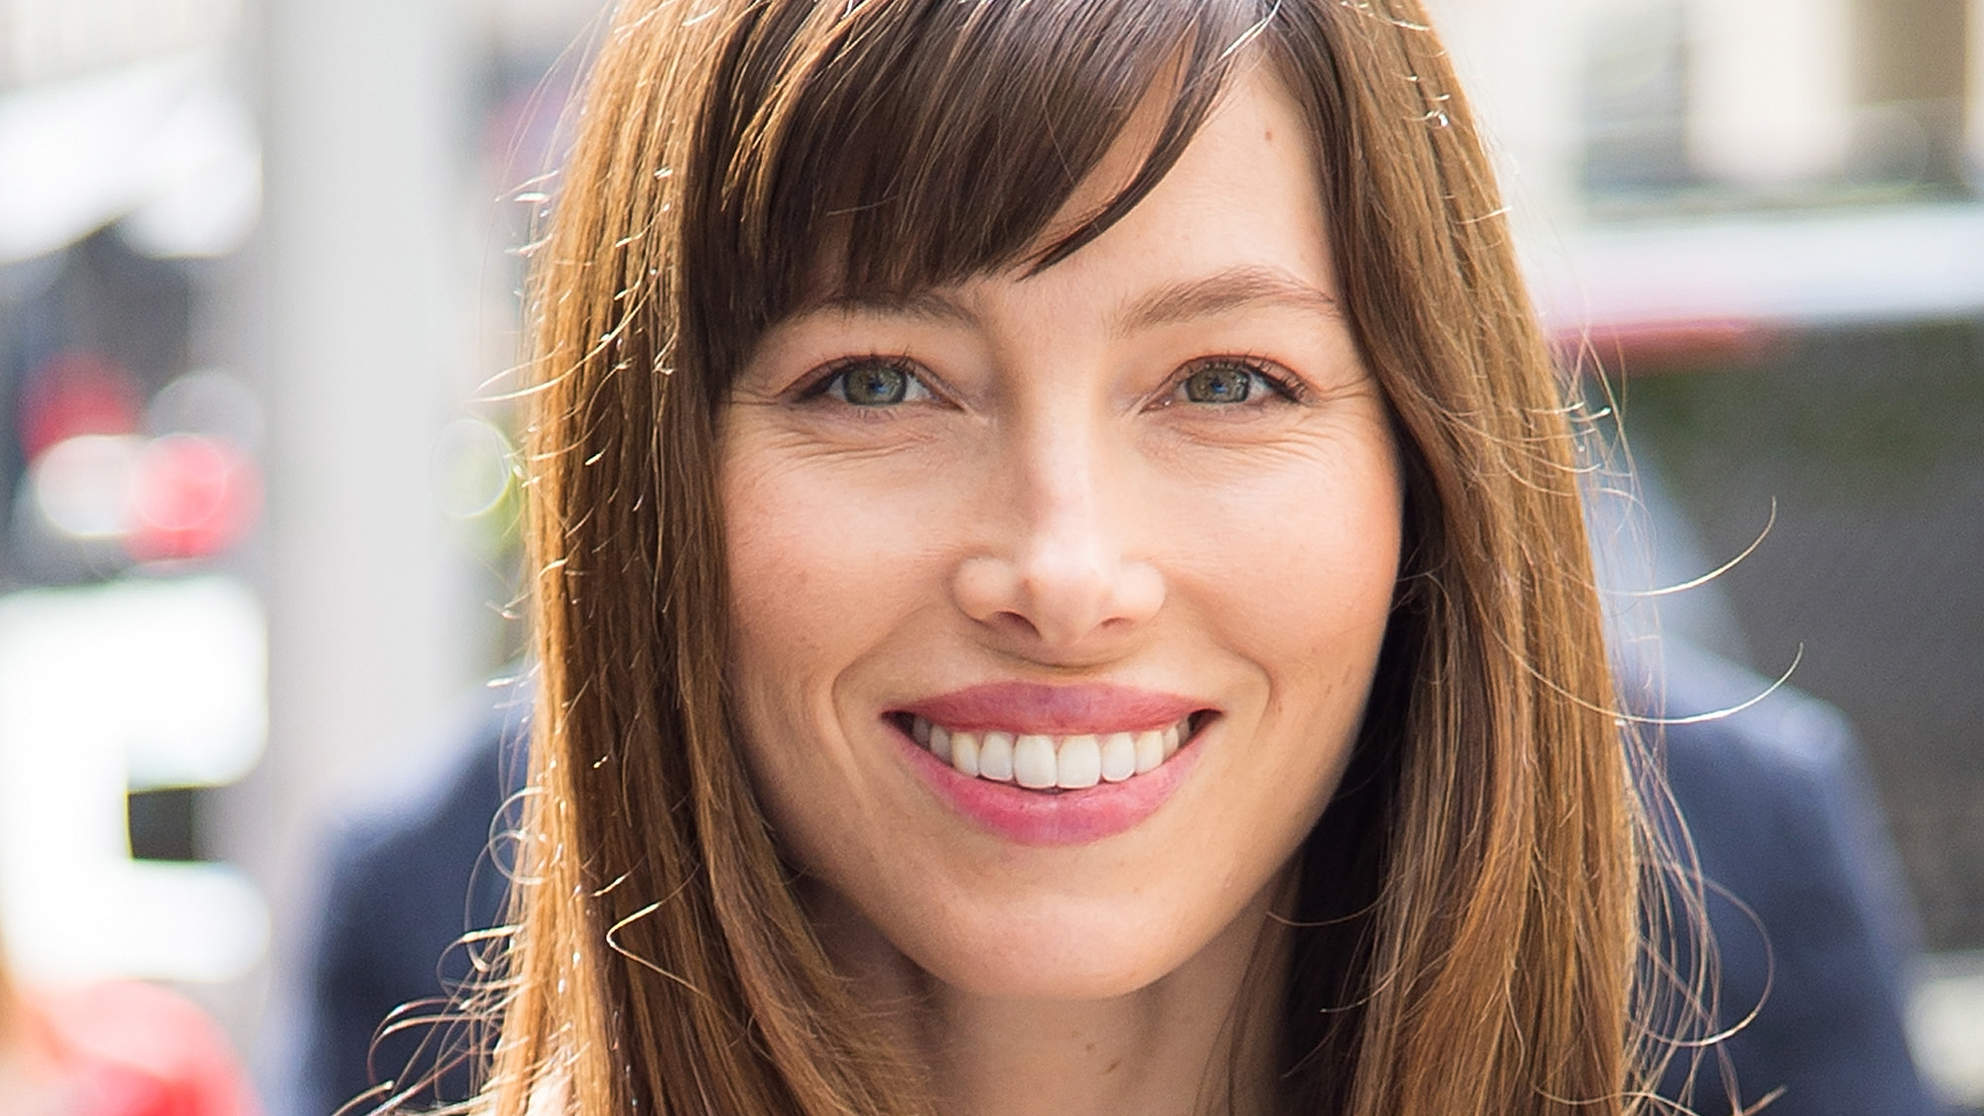 Jessica Biel Dreams of Joining the Circus and Makes Justin Timberlake Help Perfect Her Moves